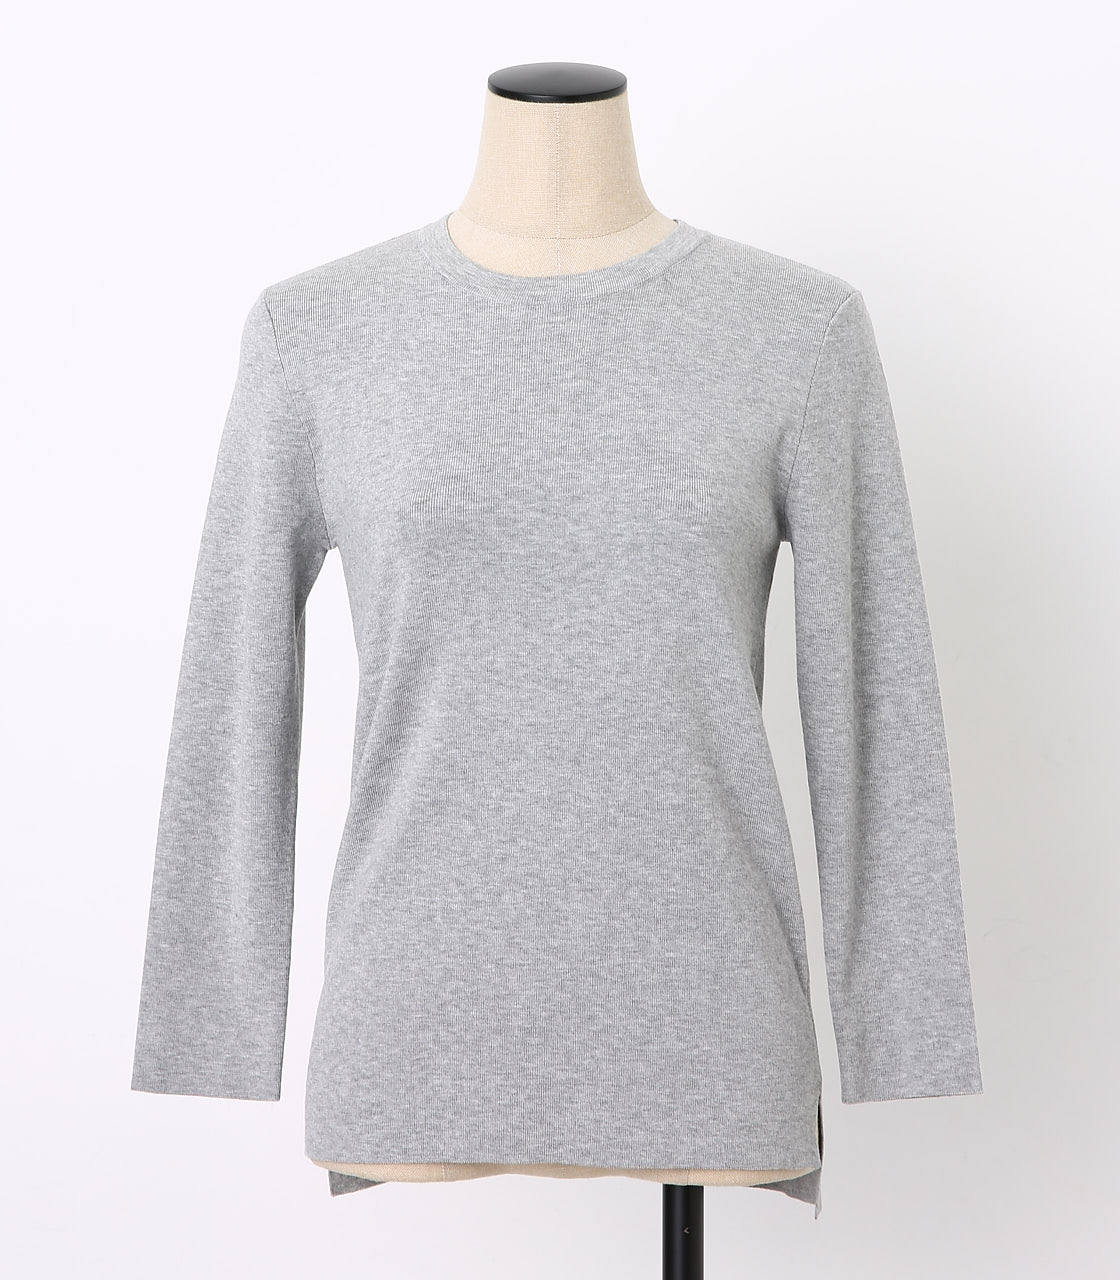 BLACK BY MOUSSY(ブラックバイマウジー) |washable longsleeve tops(GRY)